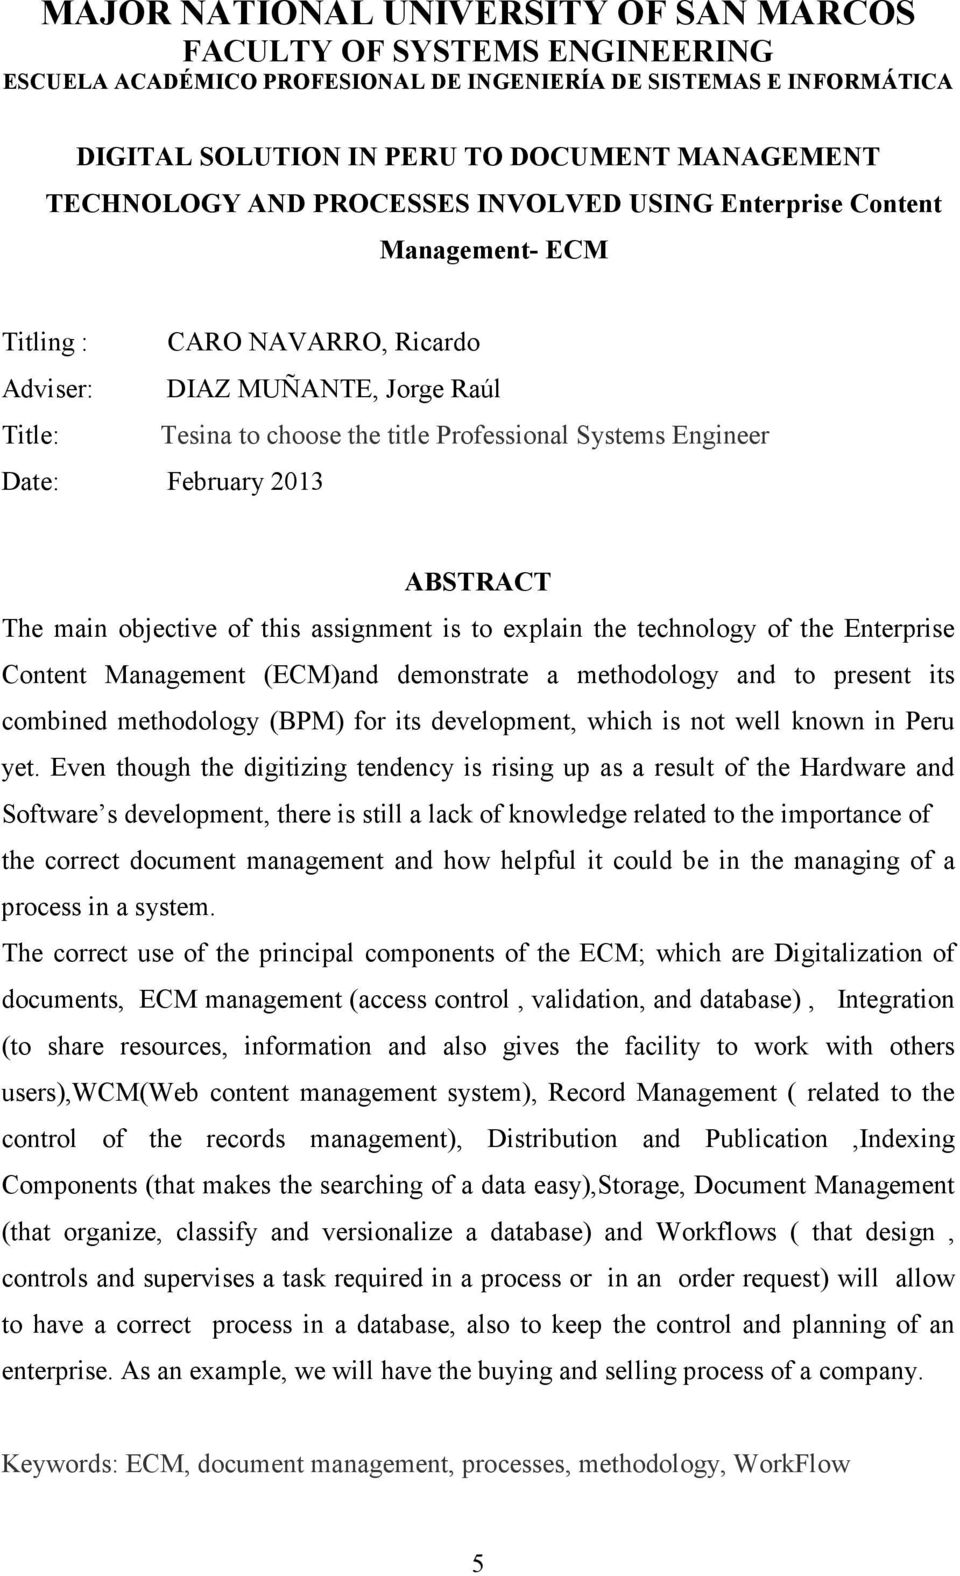 February 2013 ABSTRACT The main objective of this assignment is to explain the technology of the Enterprise Content Management (ECM)and demonstrate a methodology and to present its combined